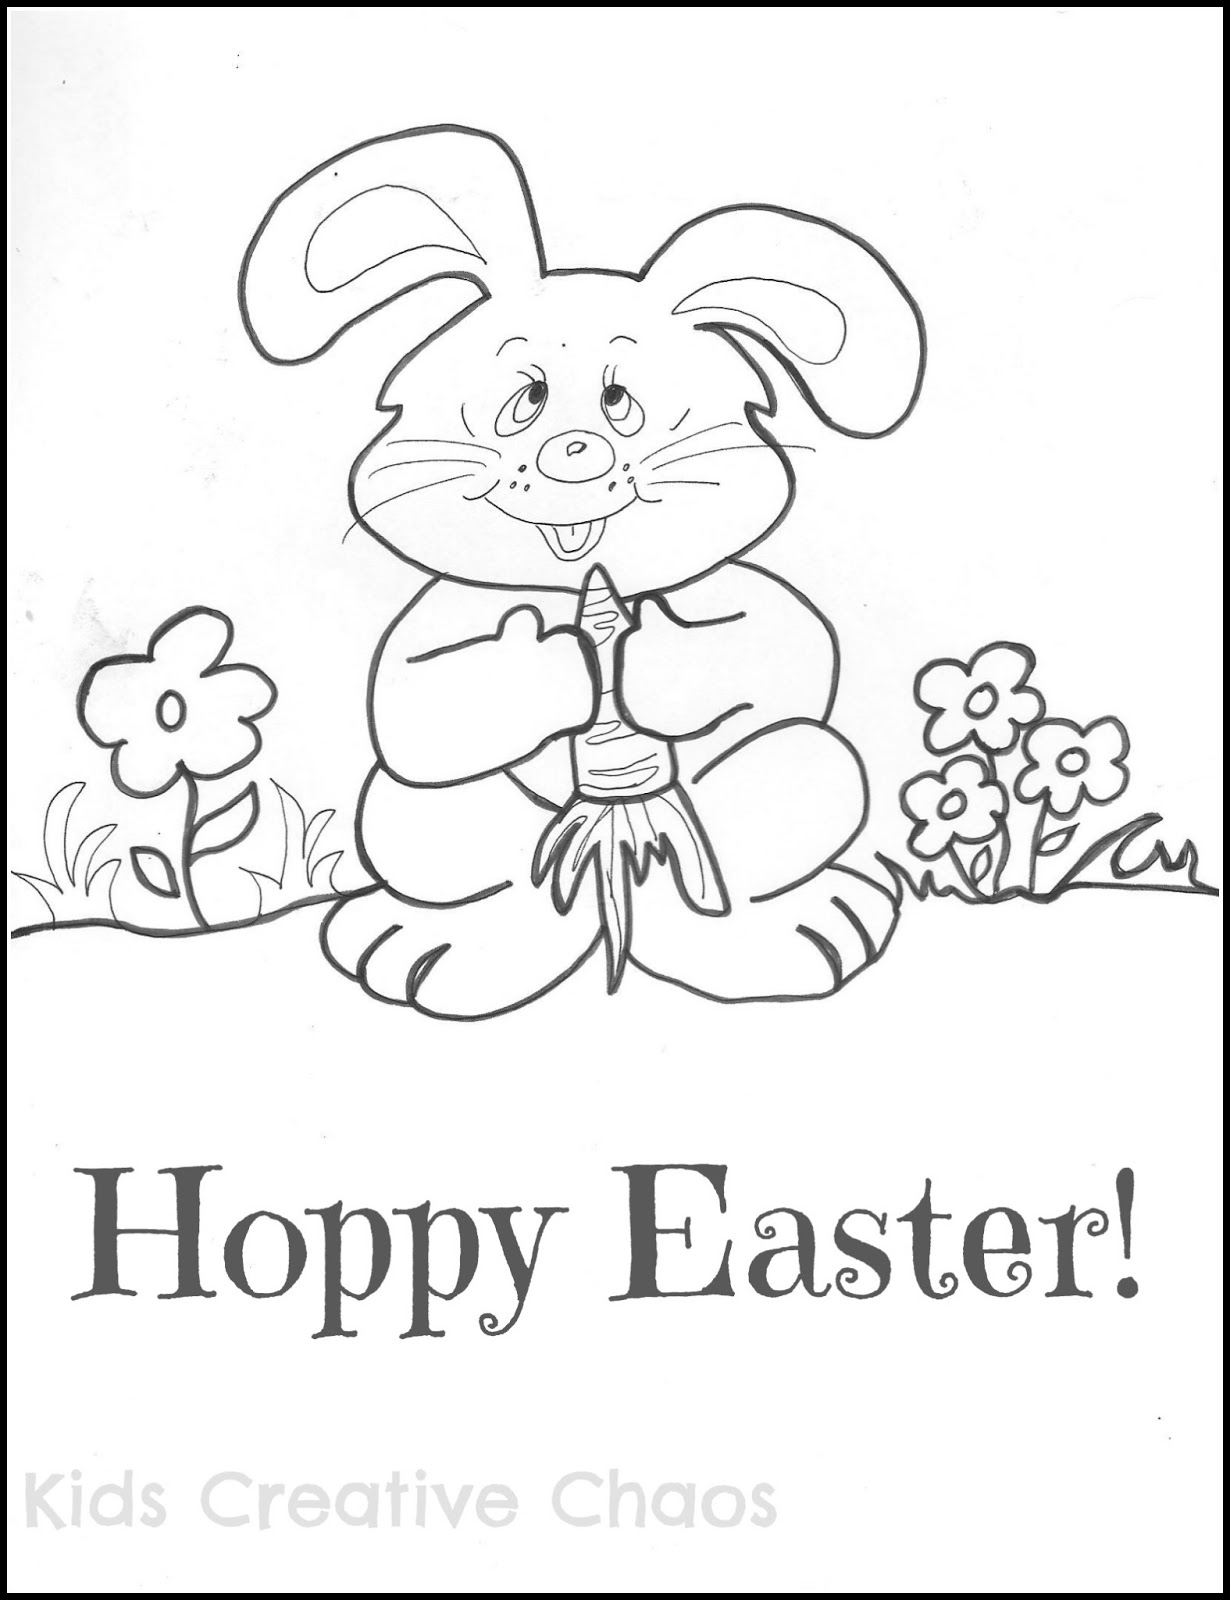 Easter bunny coloring page printable for kids kids for Easter story coloring pages for preschoolers